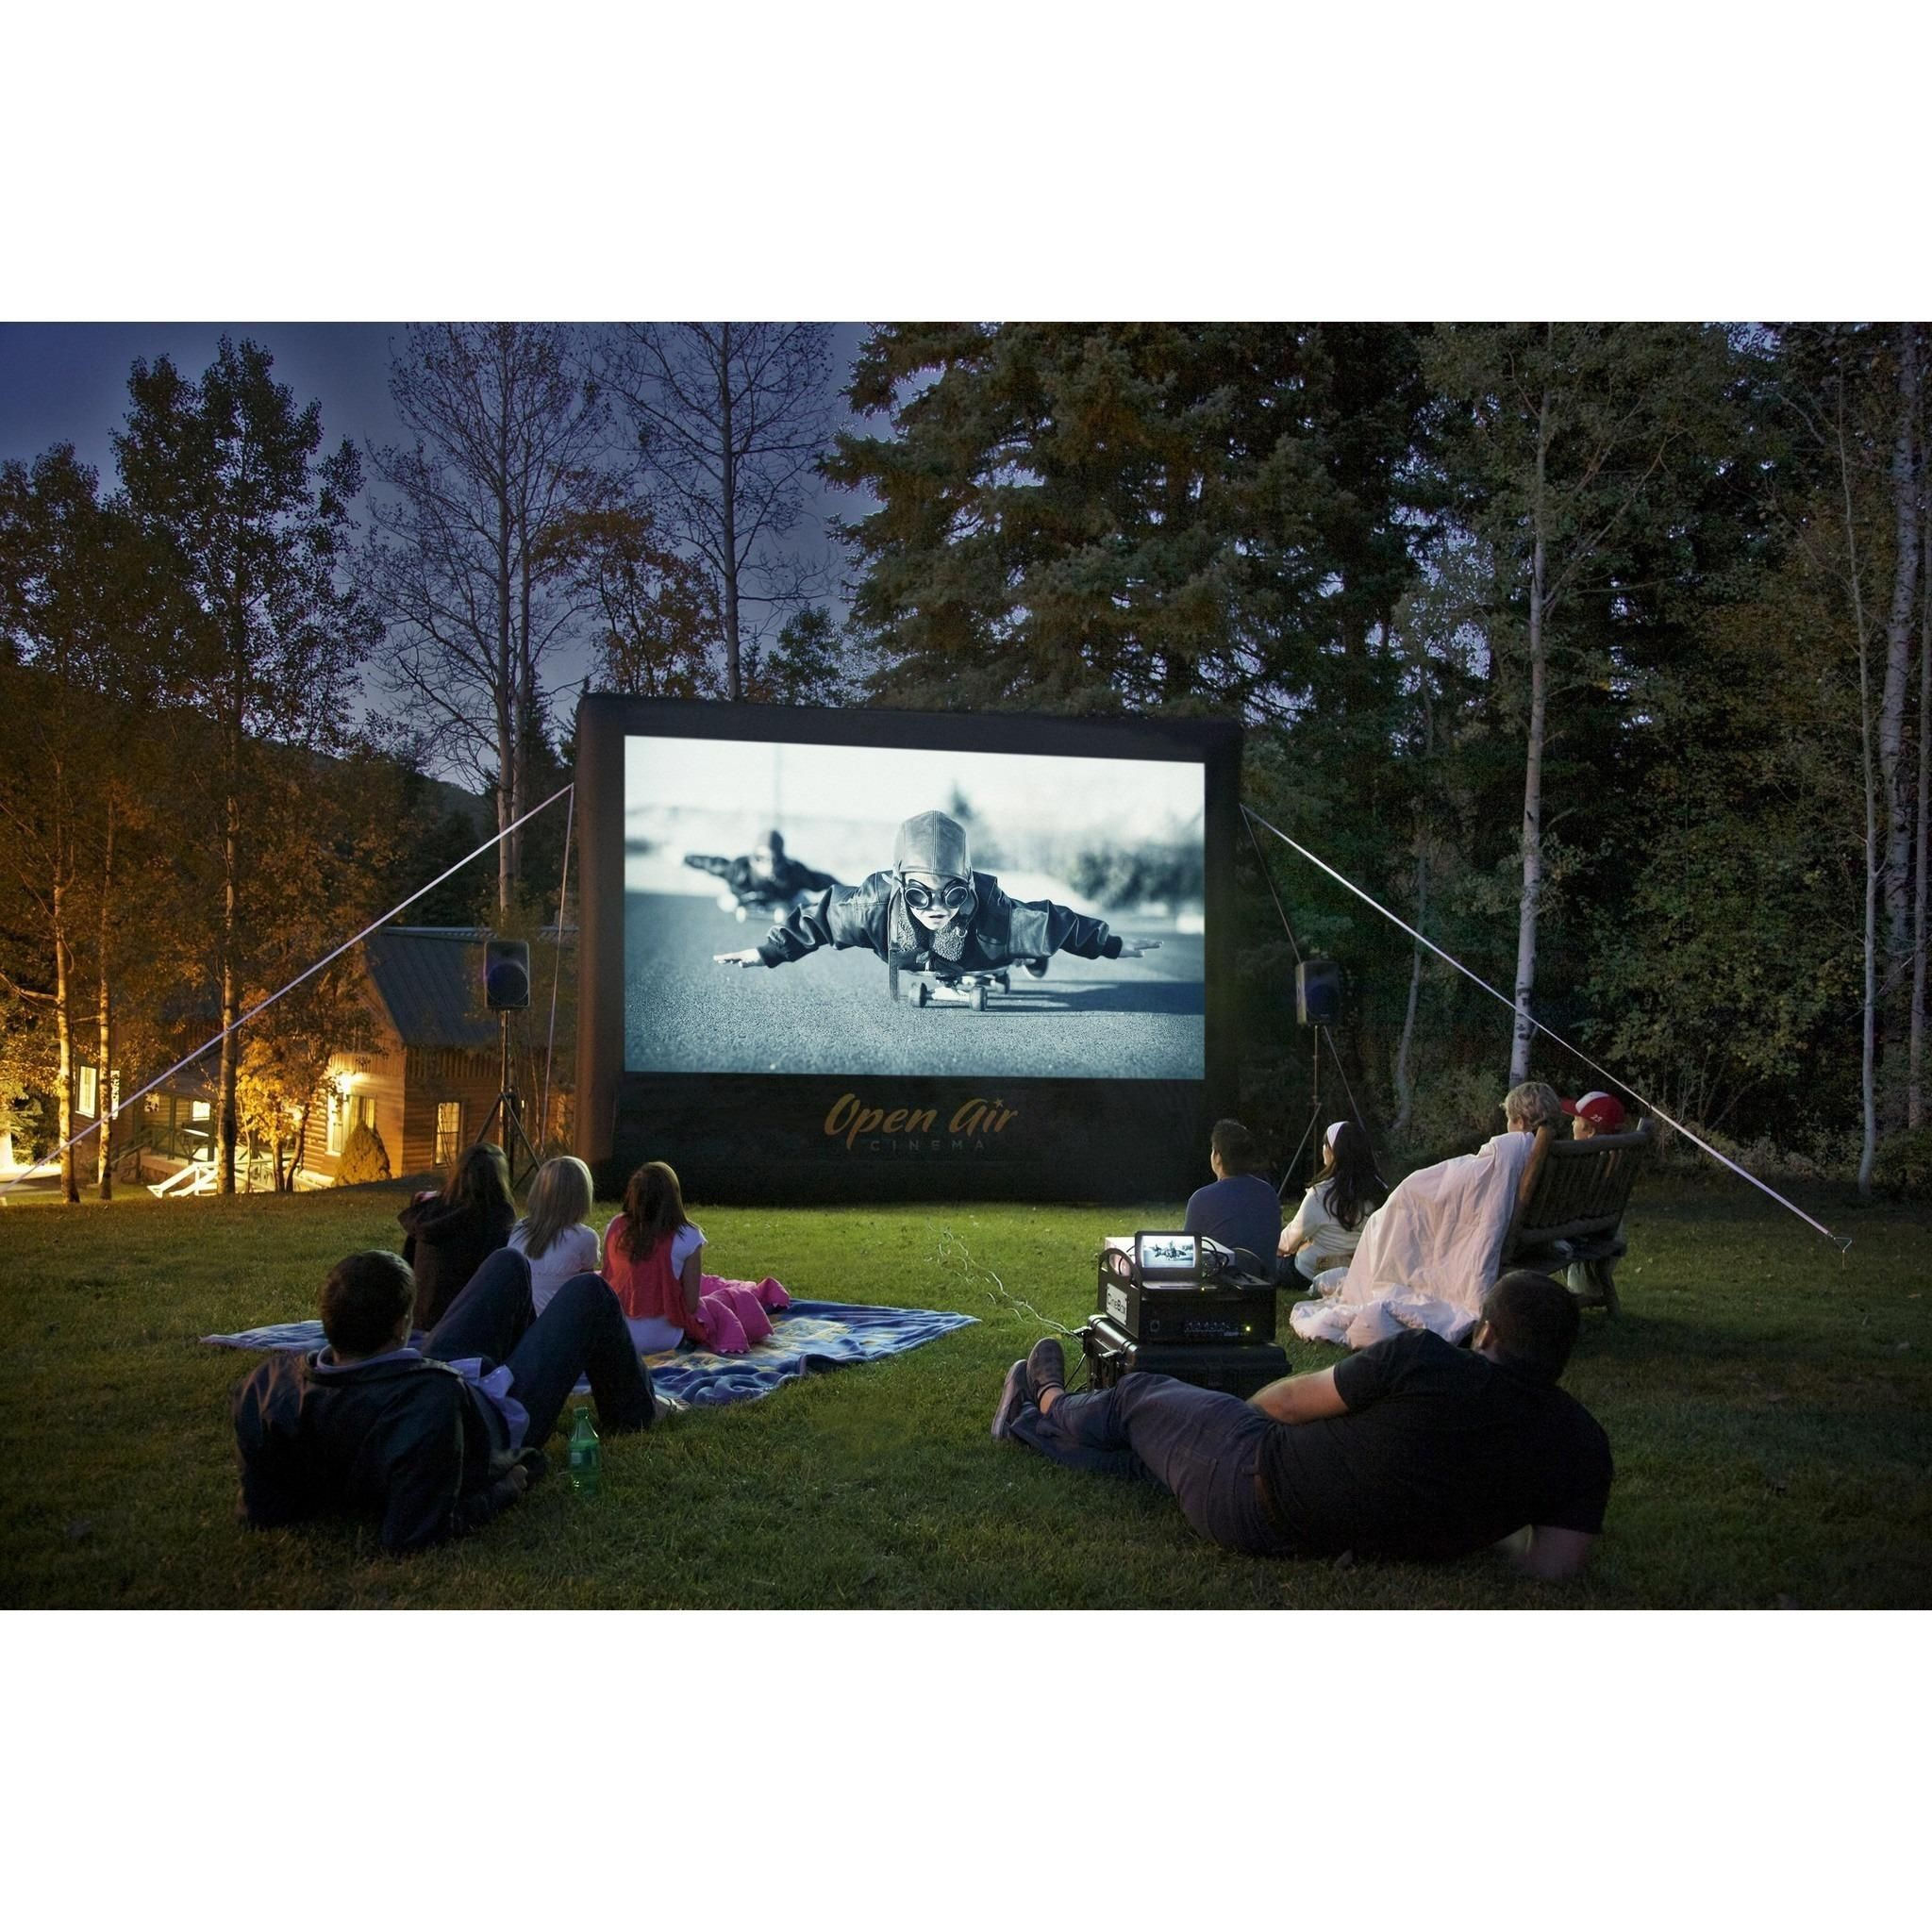 Open Air Cinema 12 Home Cinebox Outdoor Movie Theater System CBH 12